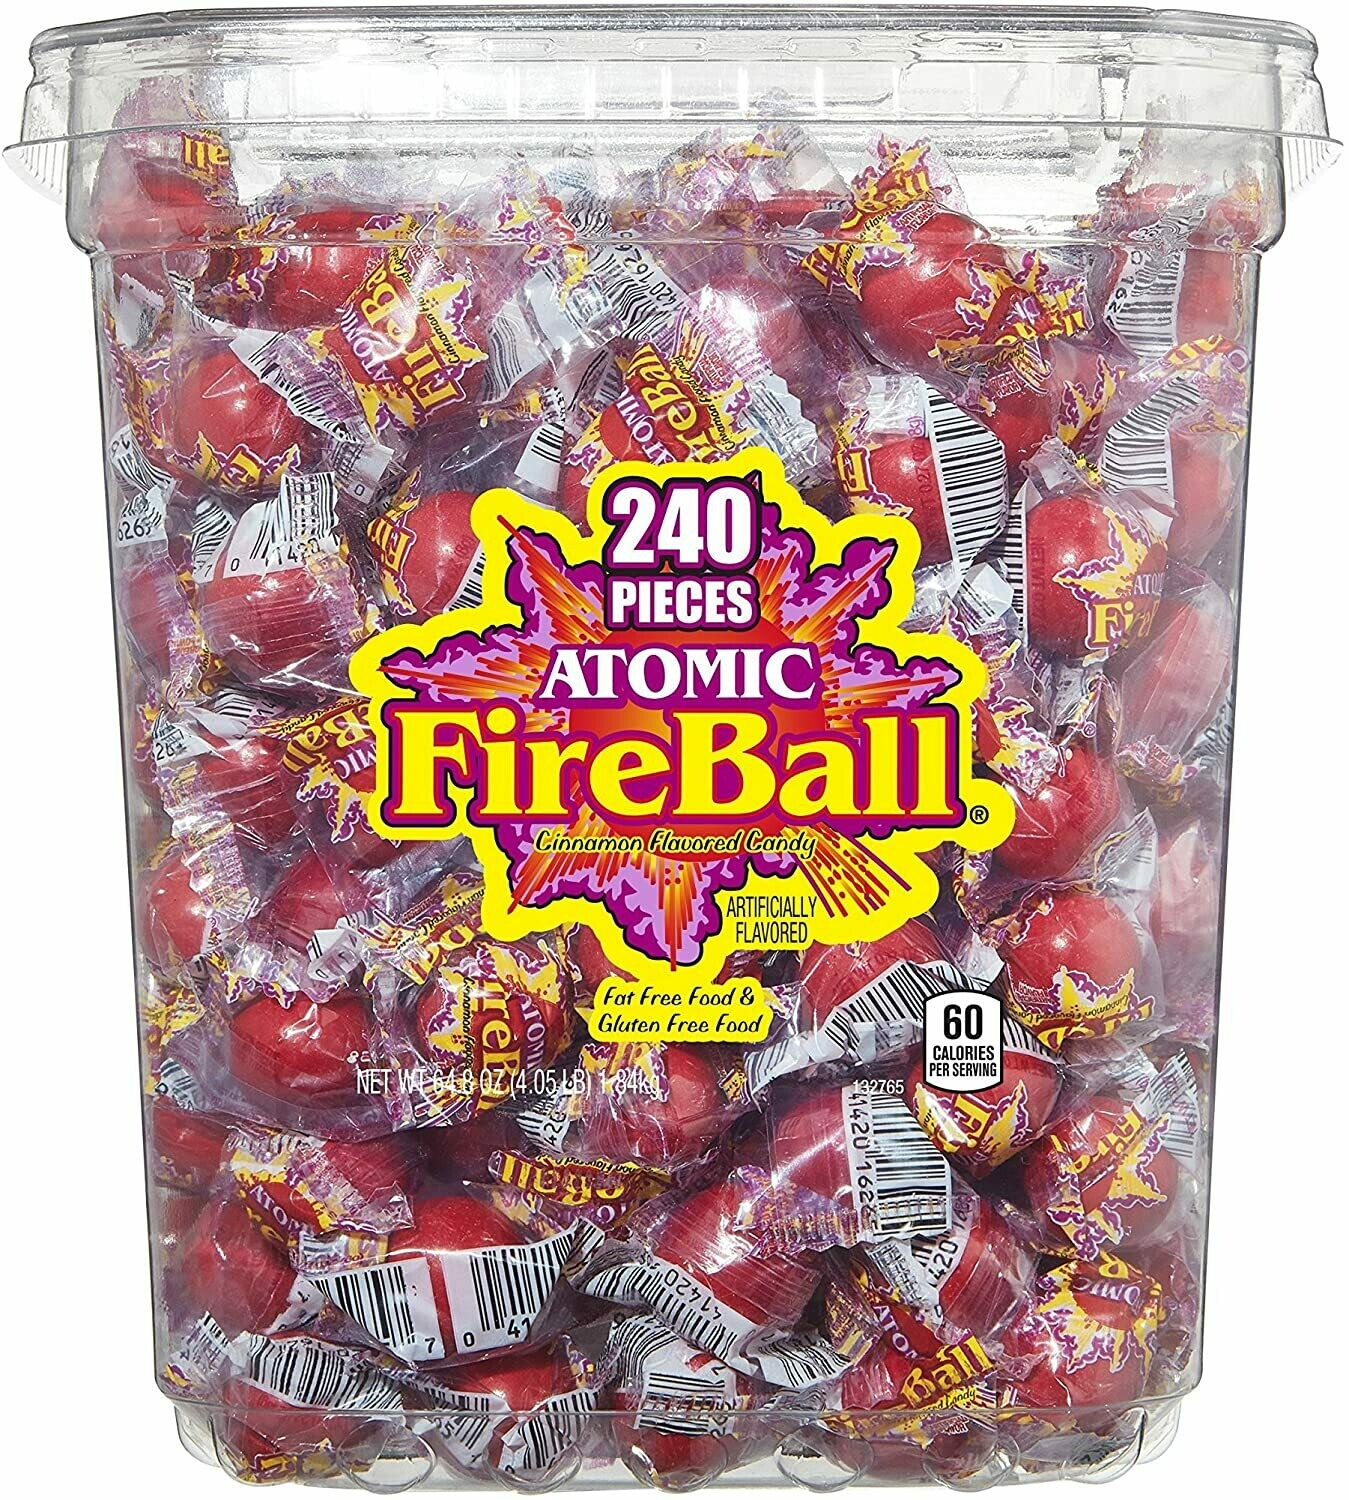 Atomic Fireballs Candy Sweets [240 PIECES]